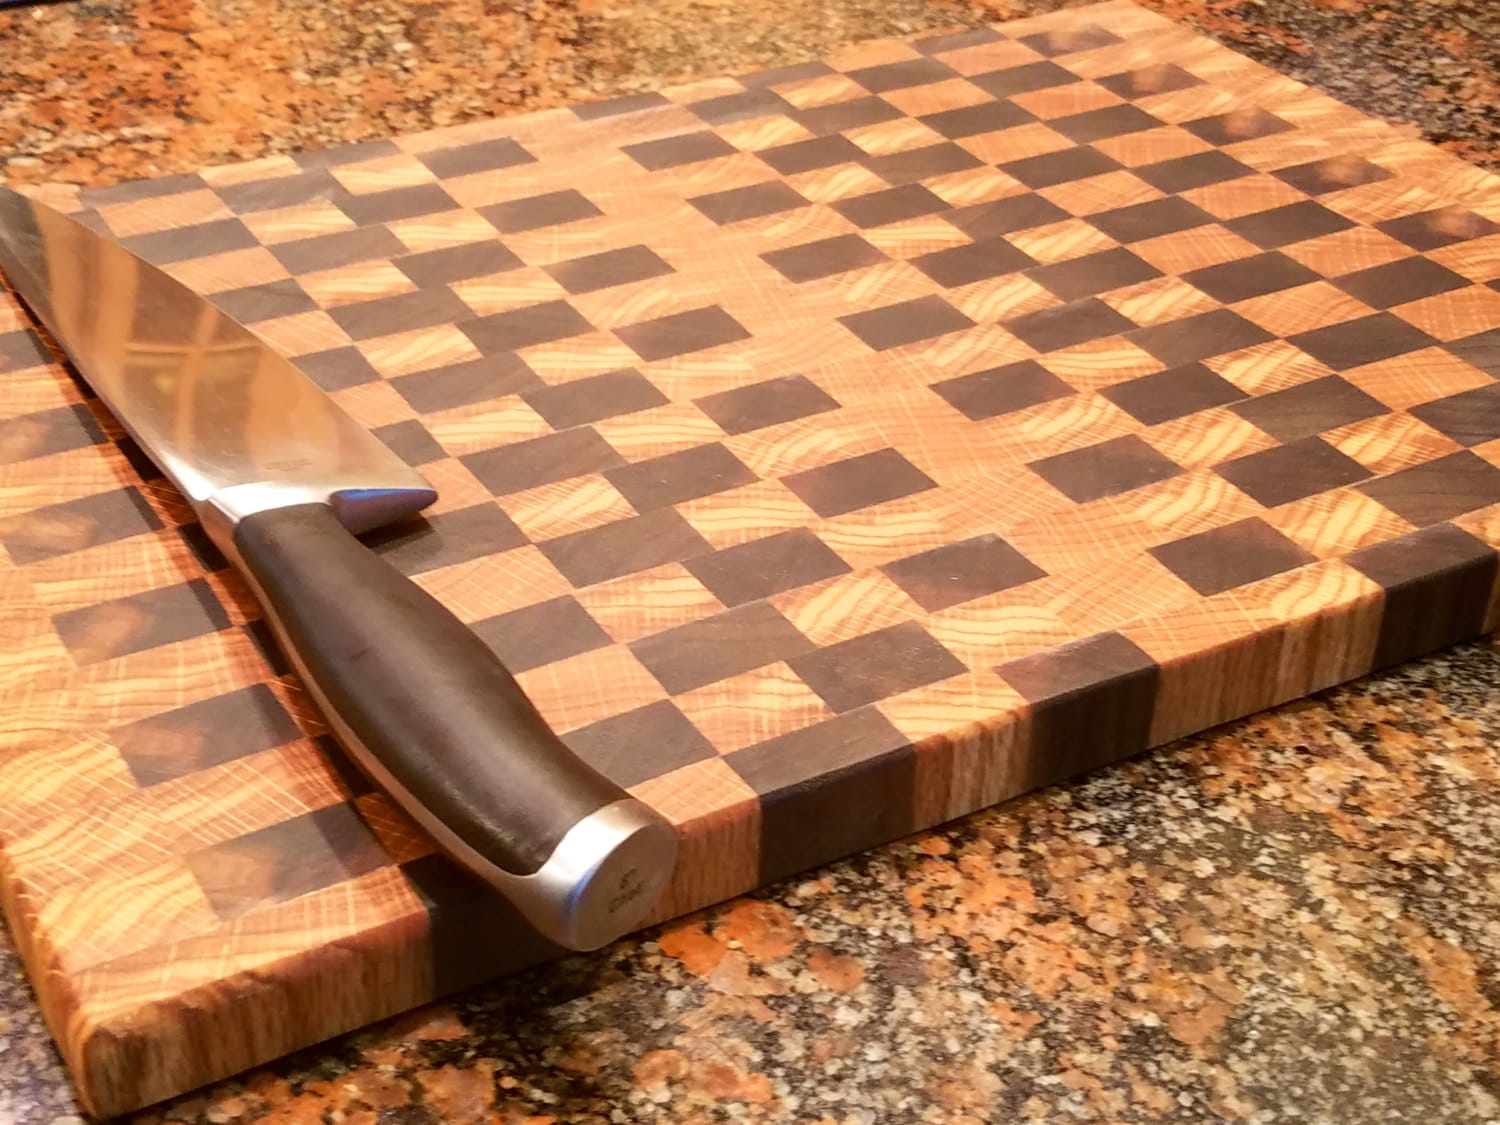 Endgrain Cuttingboard Checkerboard Pattern By